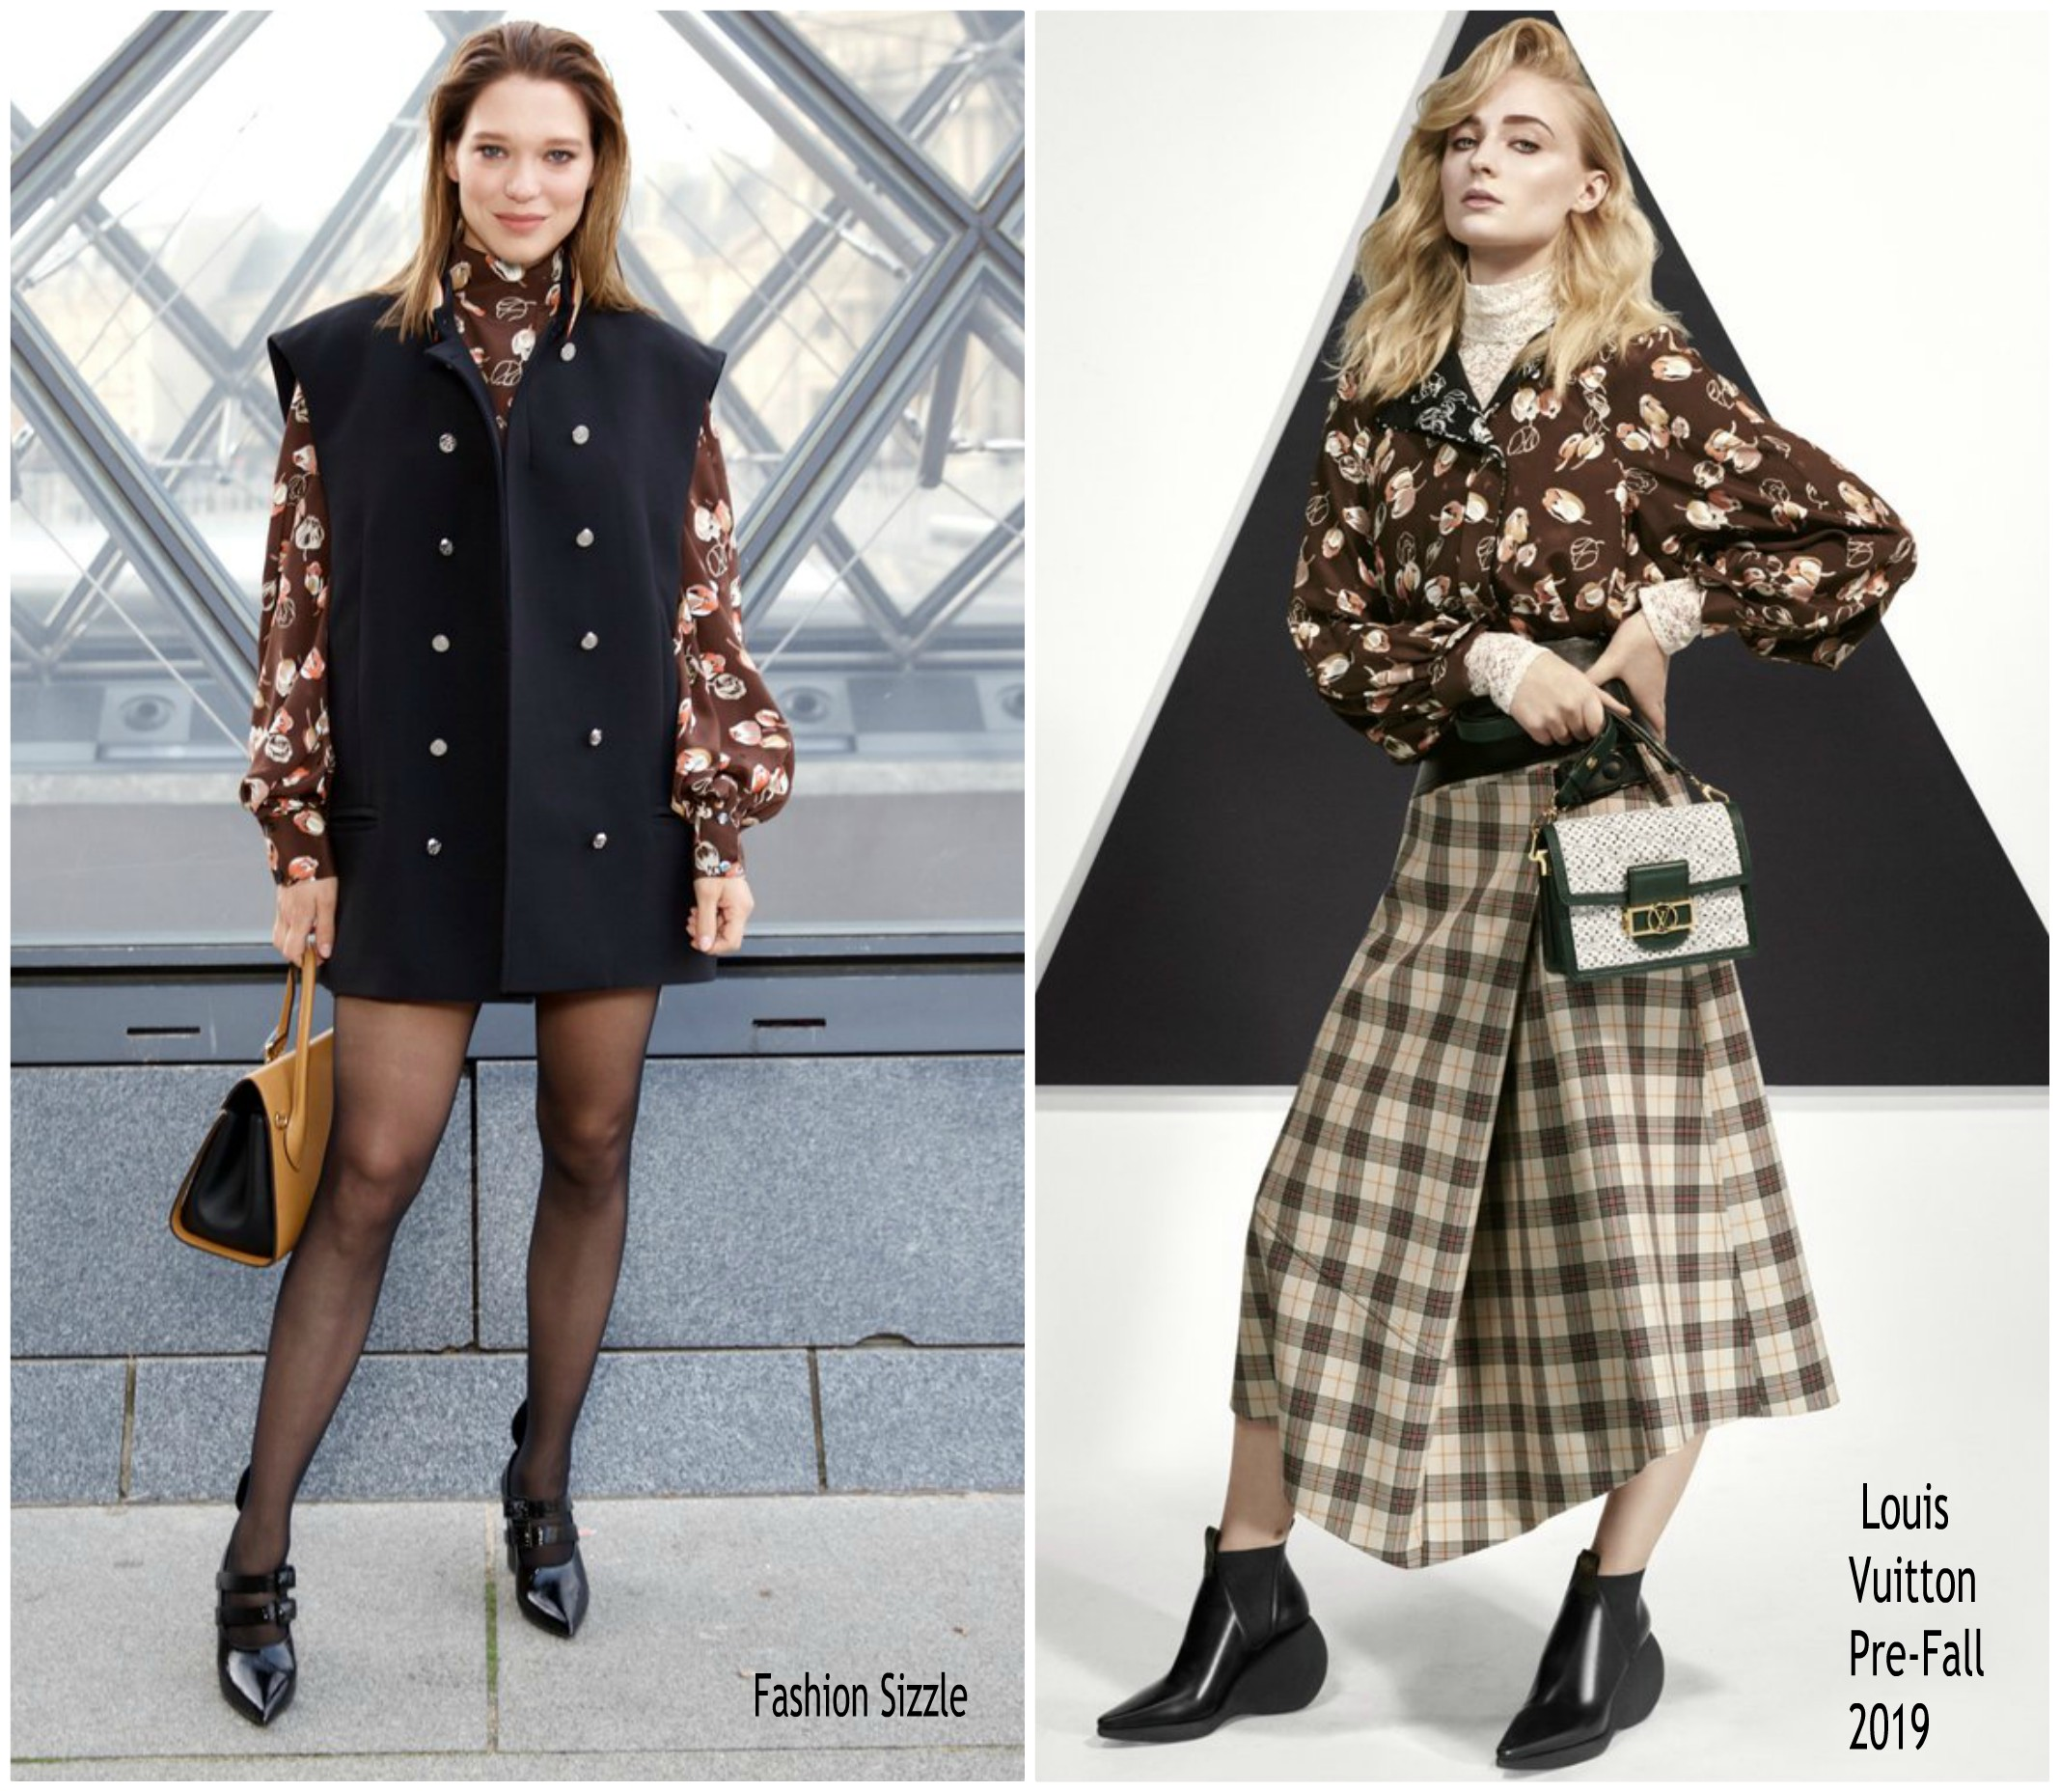 lea-seydoux-in-louis-vuitton-louis-vuitton-fall-2019-